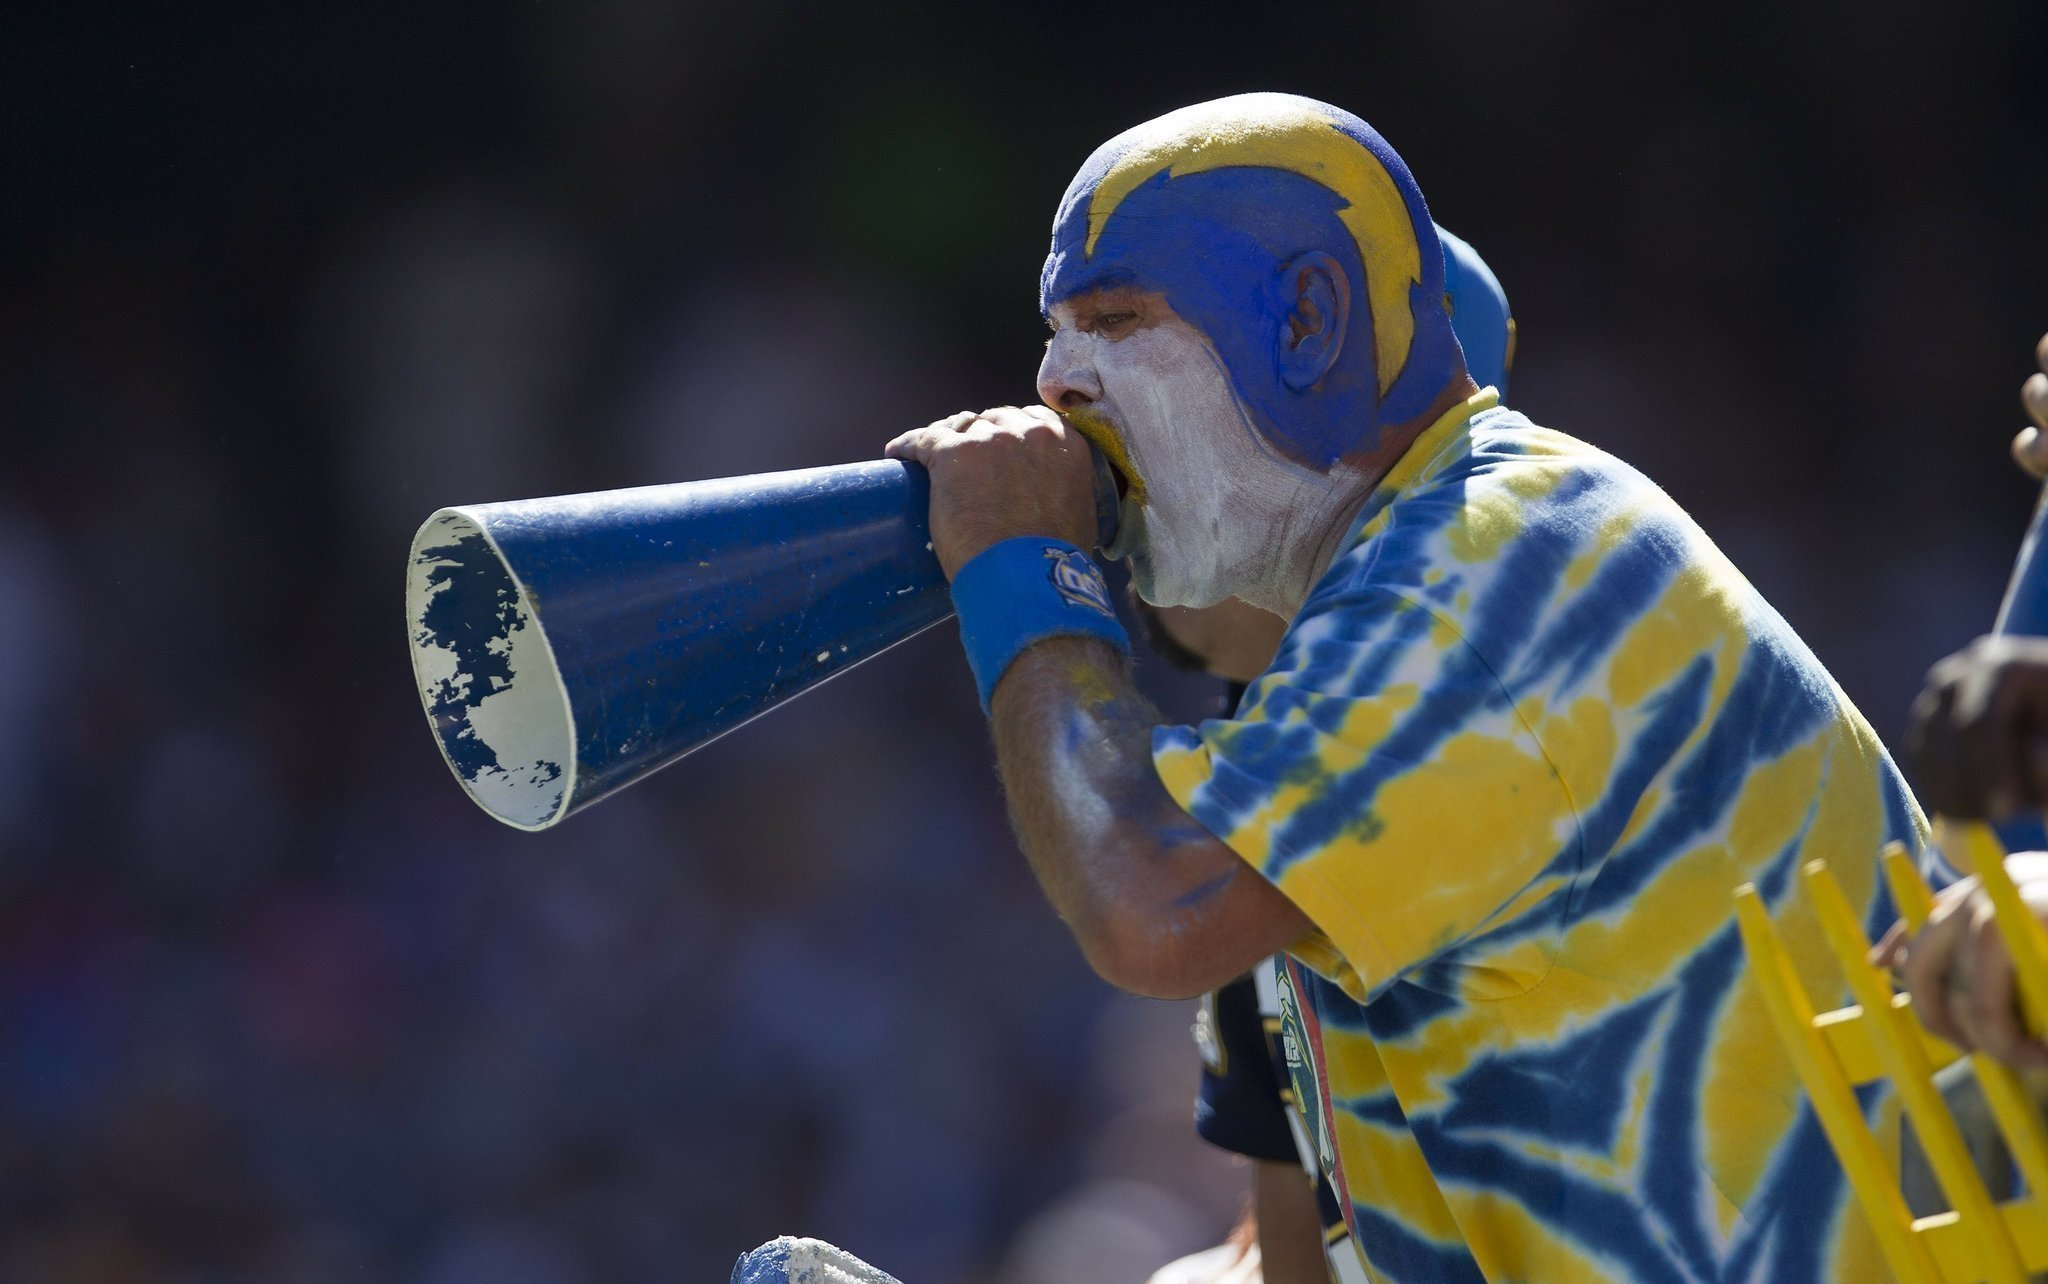 No Blackouts For Chargers In 2014 The San Diego Union